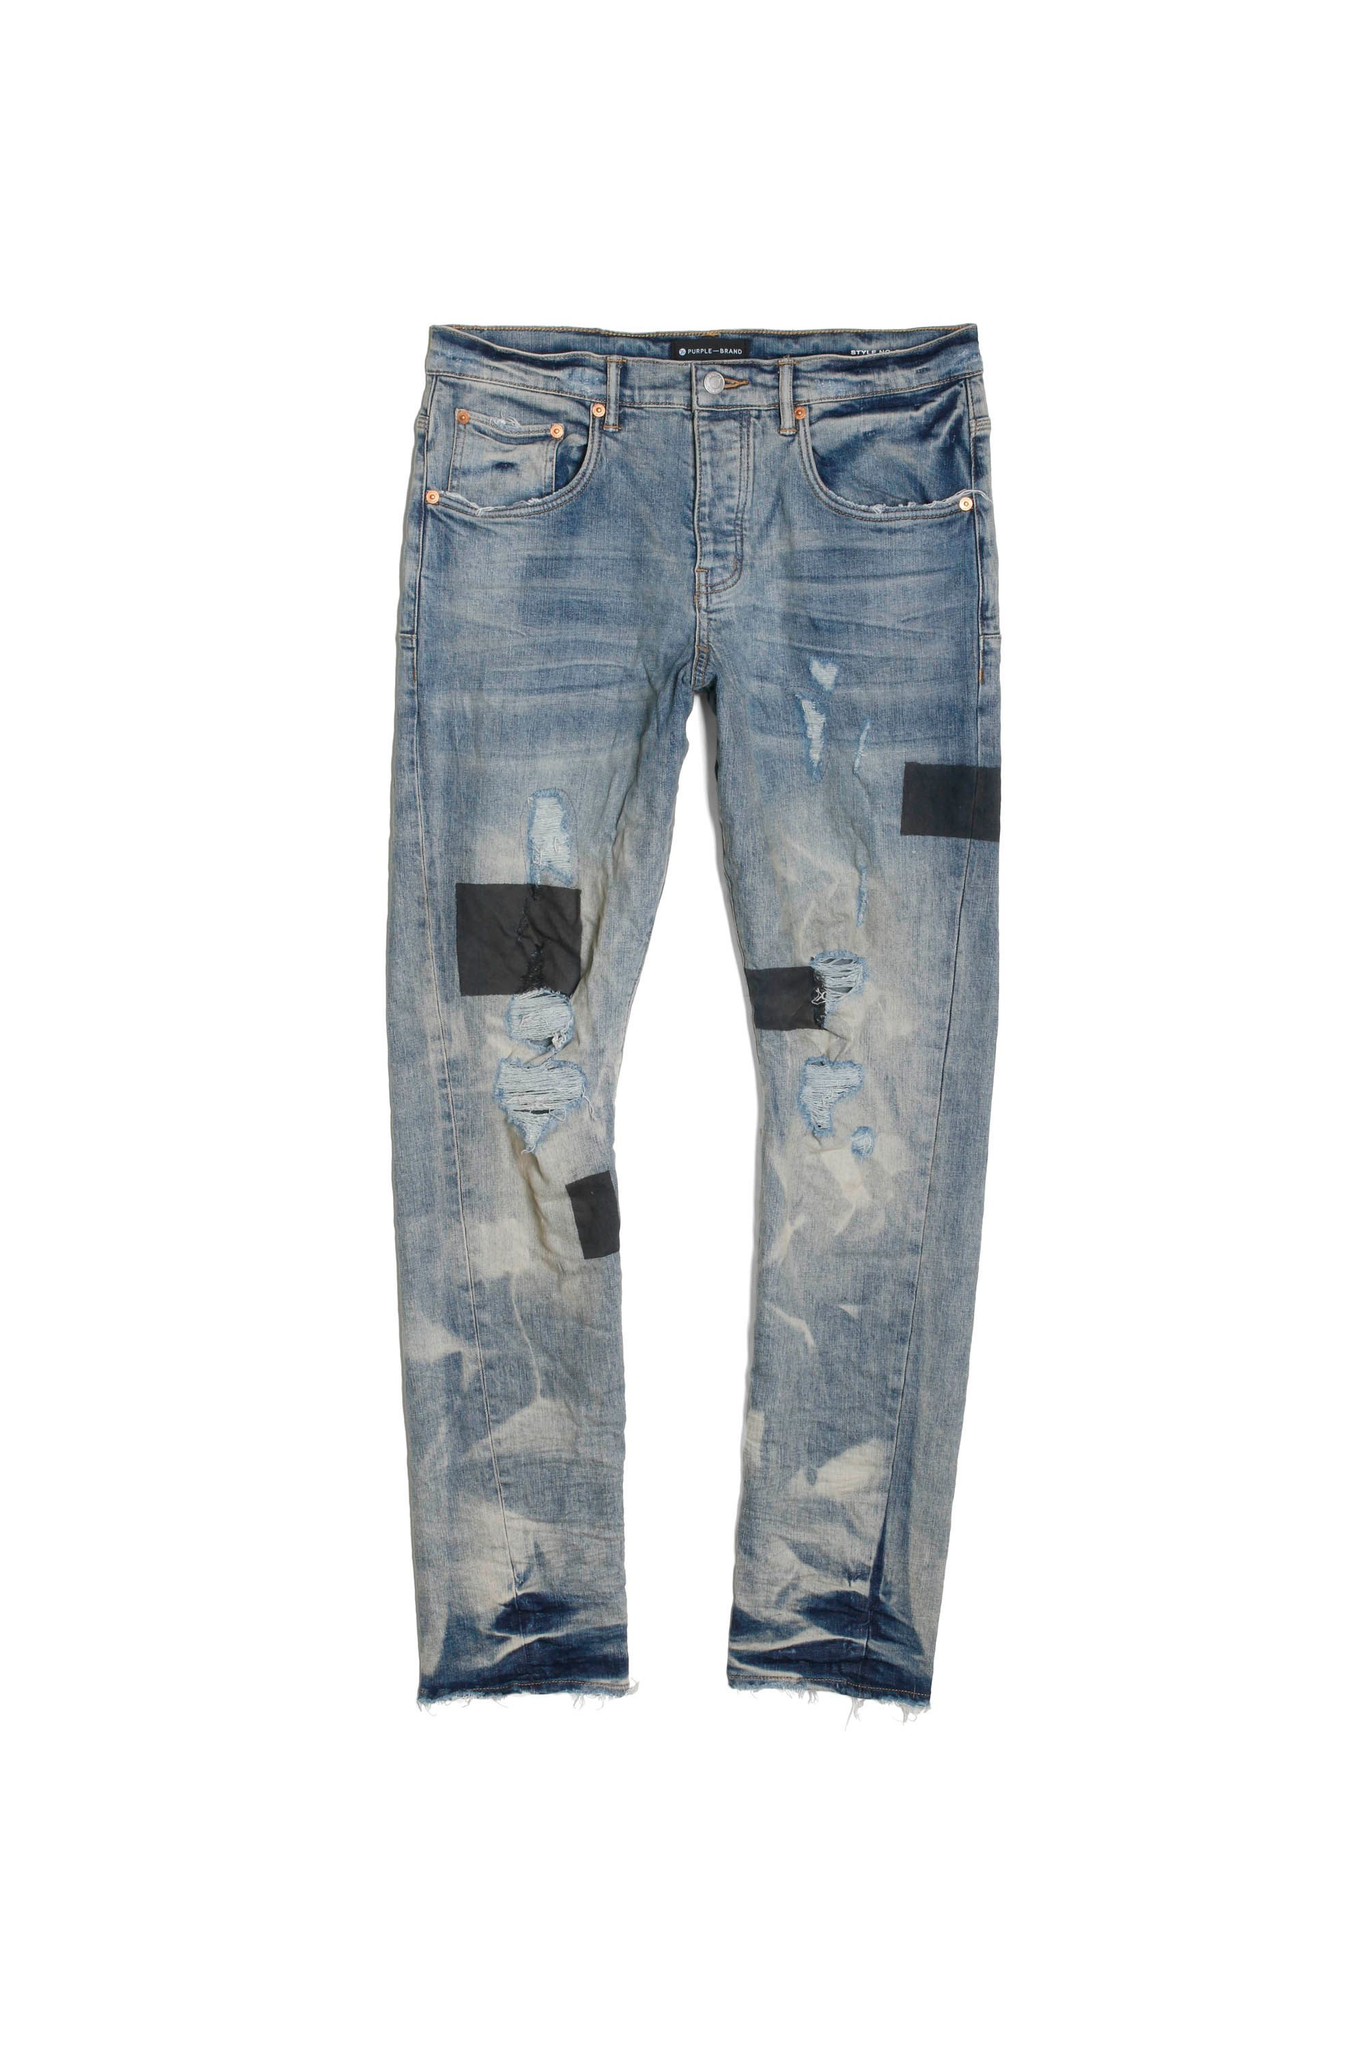 P011 MID RISE WITH STRAIGHT LEG - Dirty Tape Indigo